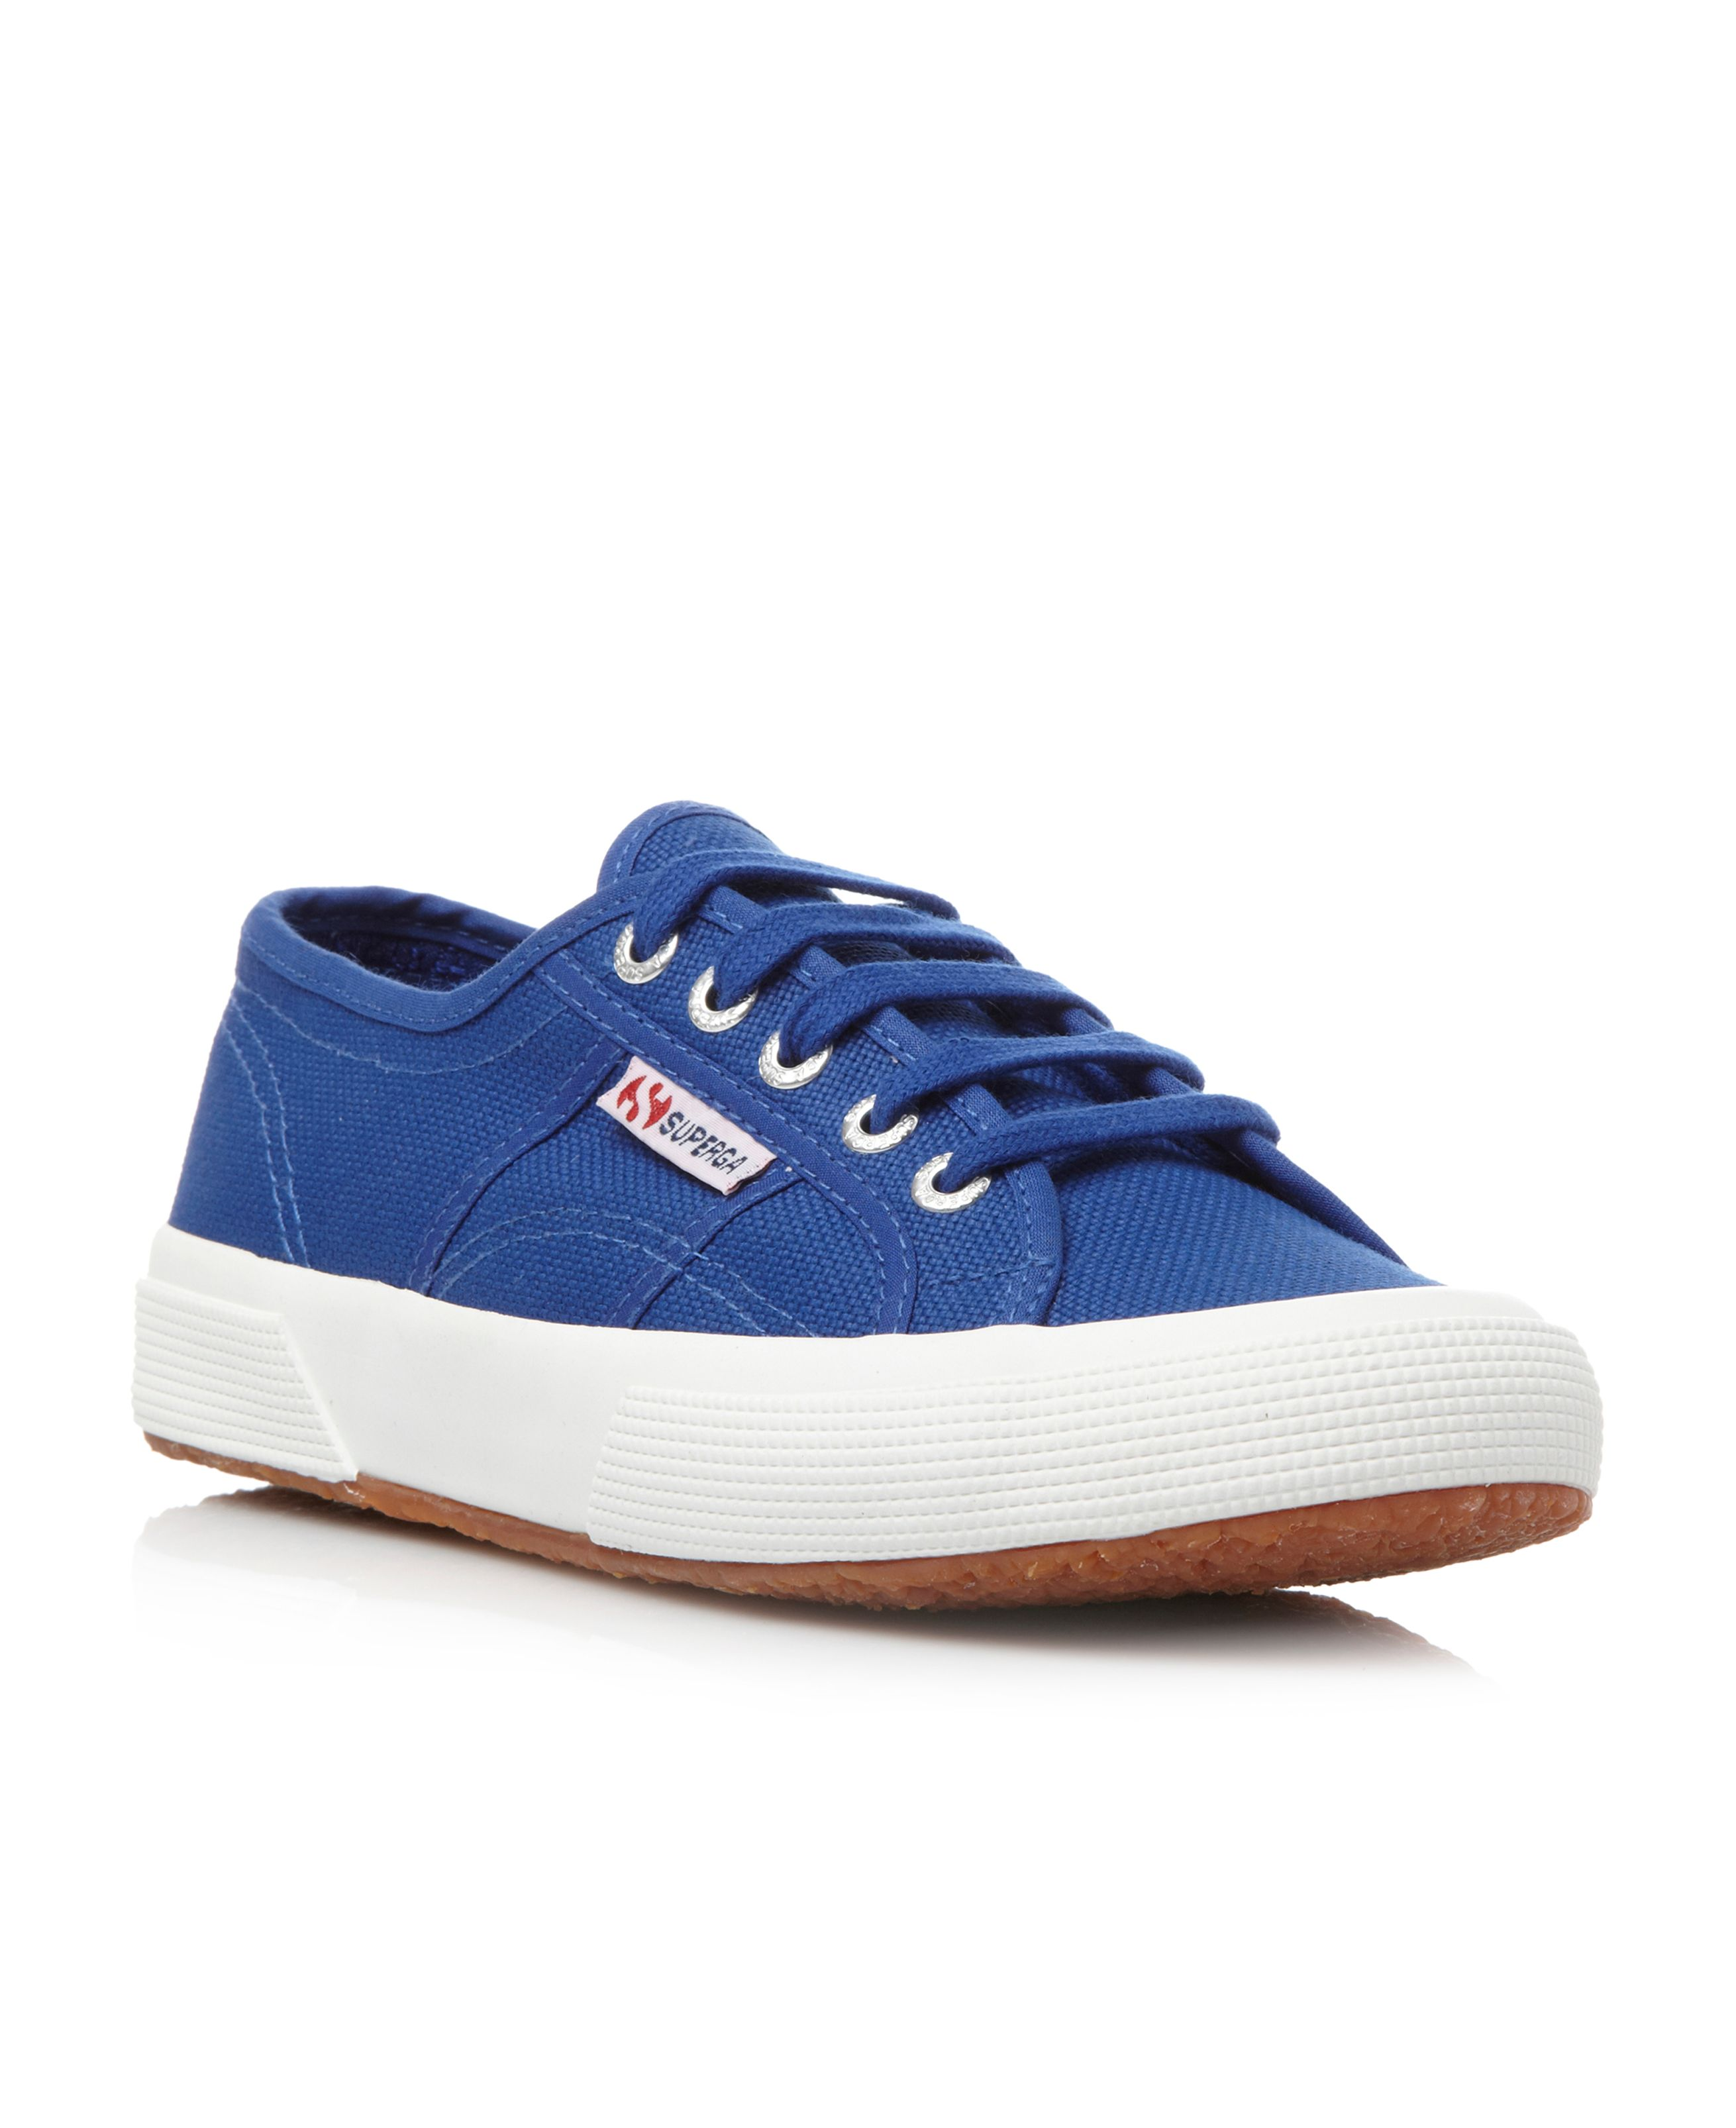 Lattitude s canvas round toe trainers